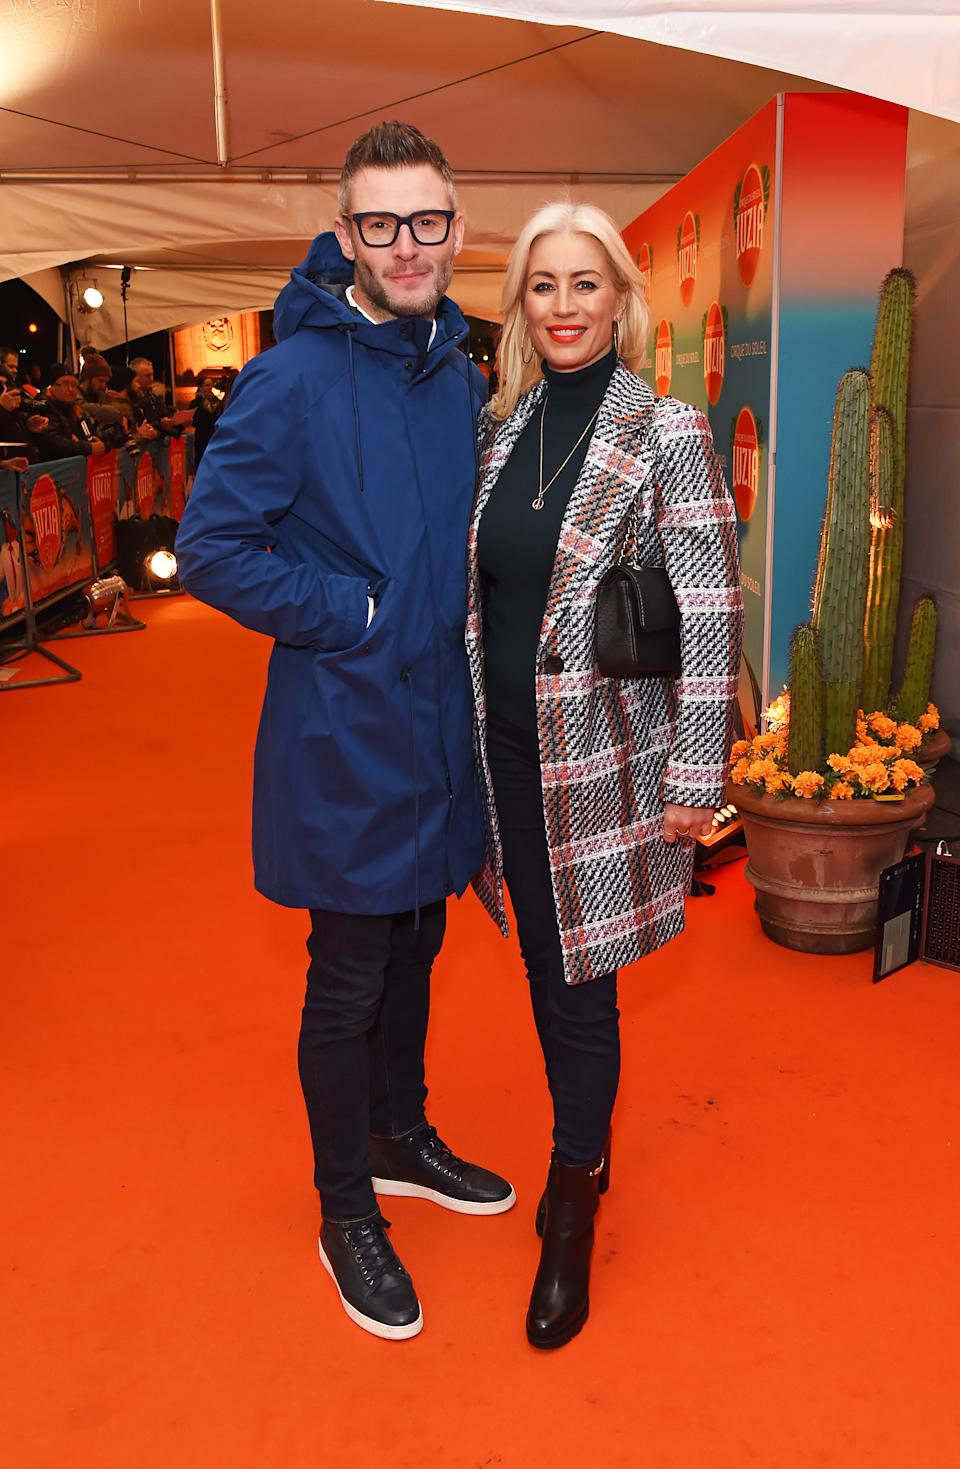 Eddie Boxshall and Denise Van Outen arrive at the gala performance of Cirque De Soleil's LUIZA (Photo by David M. Benett/Dave Benett/Getty Images)